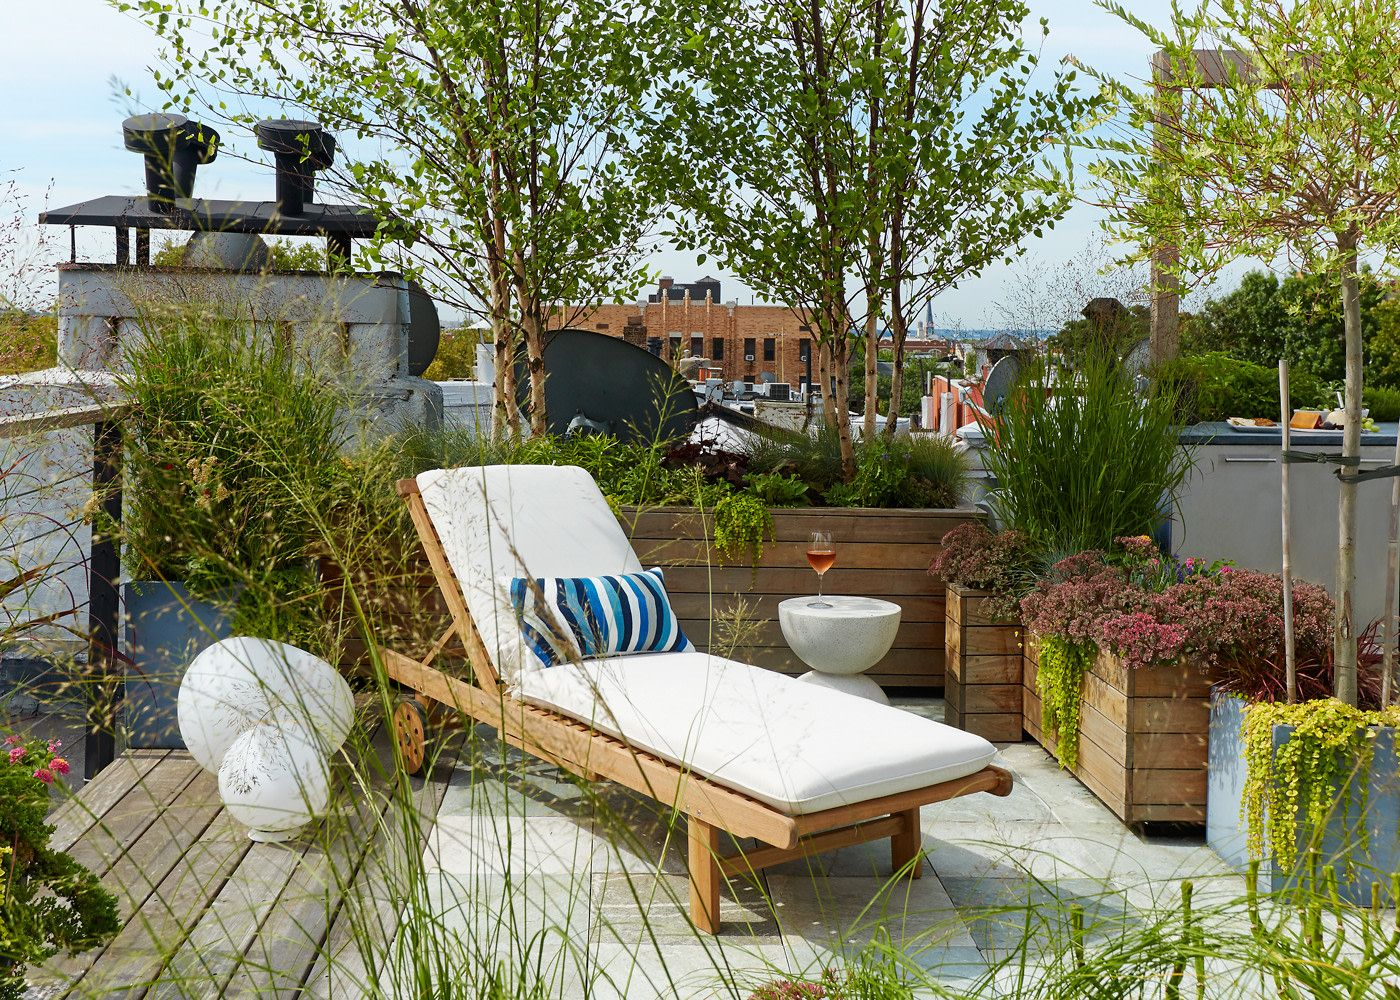 Rooftop Garden Ideas  Laurie BlumenfeldRusso Brooklyn Renovation is part of Rooftop garden, Garden design, Modern outdoor seating, Backyard, Roof garden, Outdoor space - Designer Laurie BlumenfeldRusso knew that when it came time to redesign her Brooklyn Heights rooftop, she had the option to create a little oasis that spoke to her love of gardening  Check out her entire renovation here